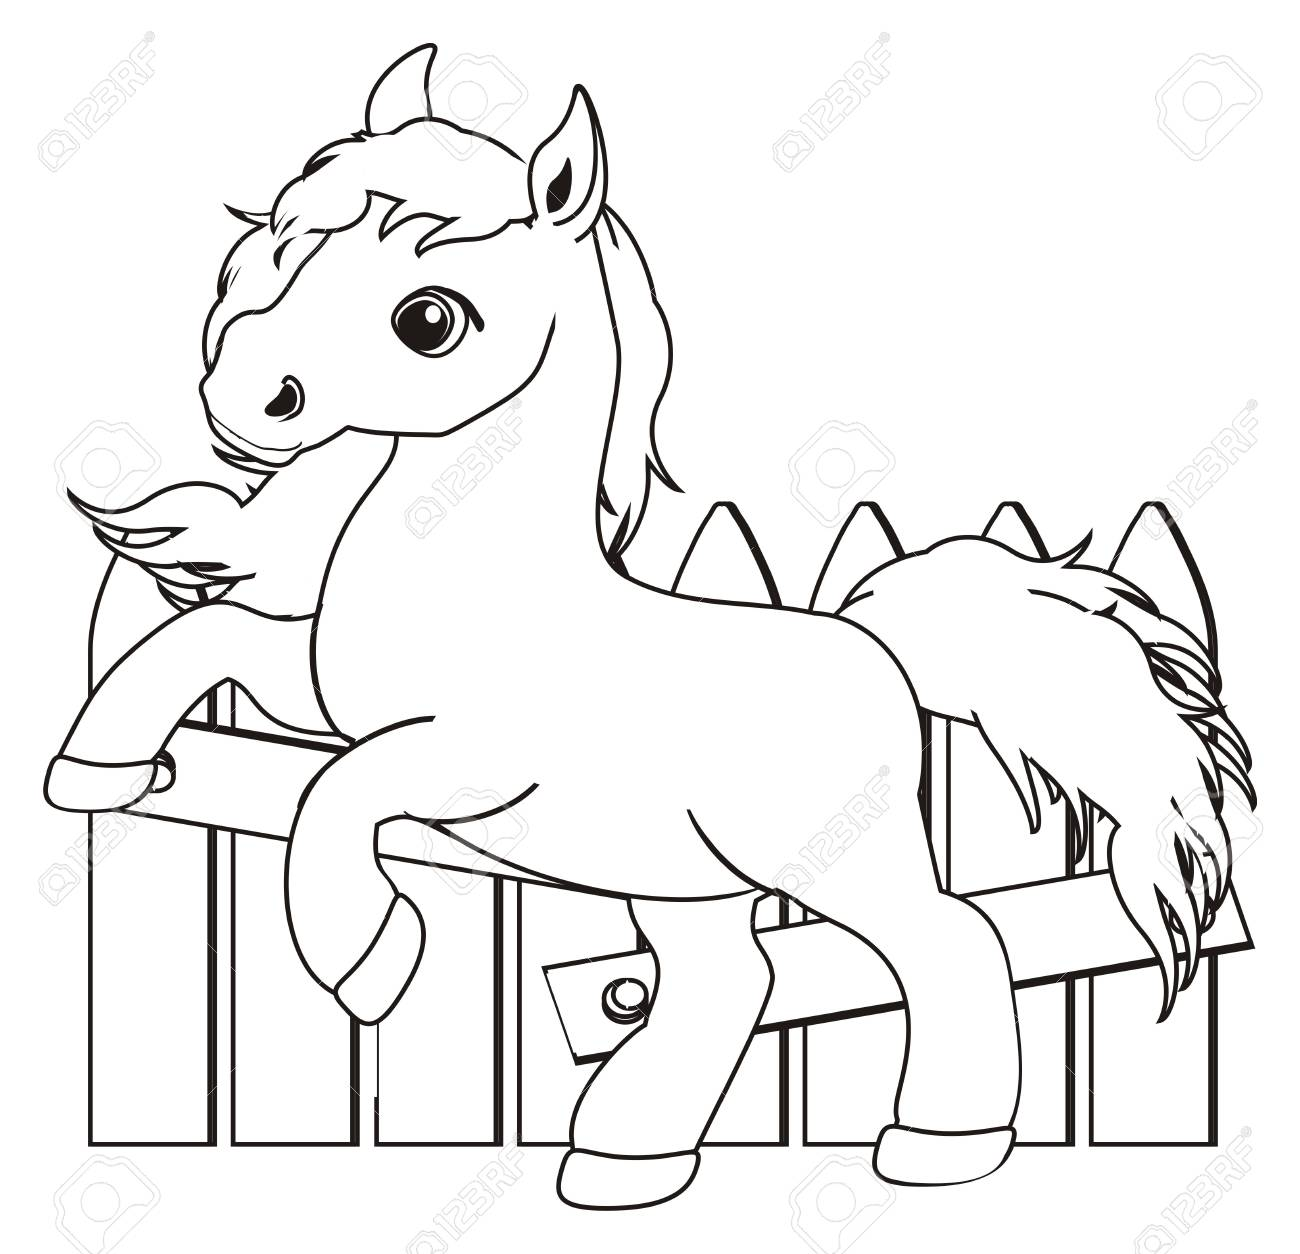 Coloring Horse And Fence Stock Photo, Picture And Royalty Free Image ...